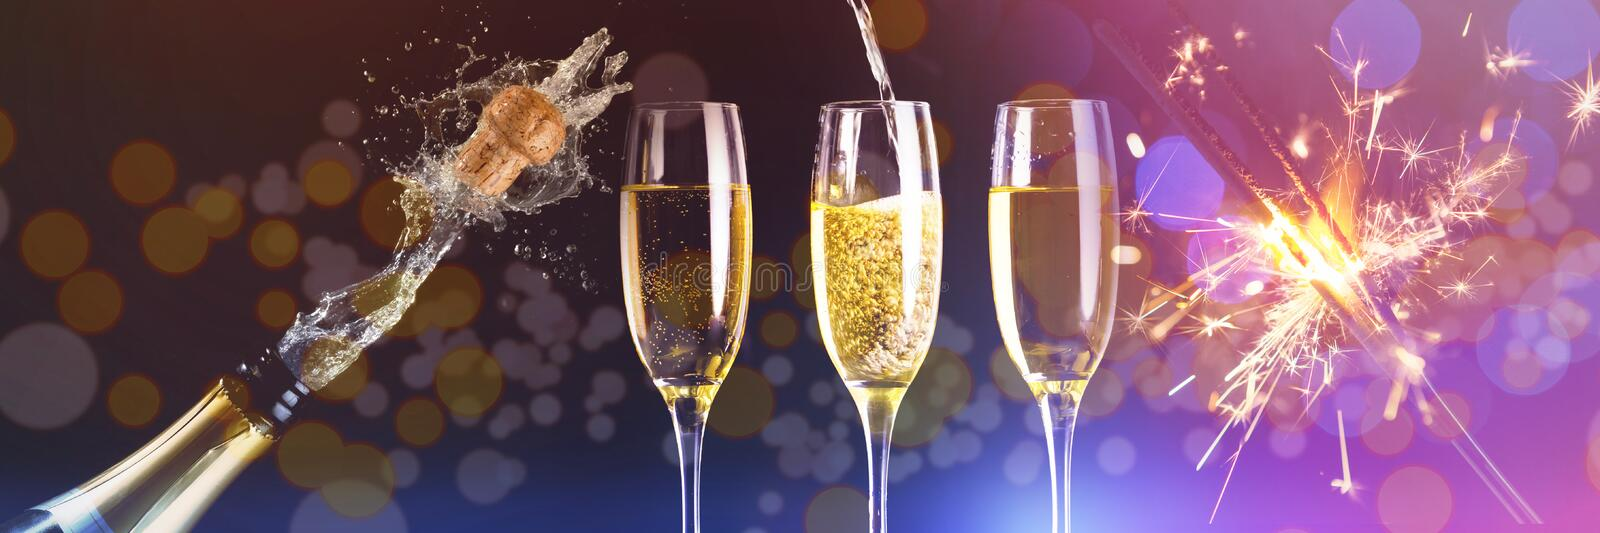 Composite image of two full glasses of champagne and one being filled. Two full glasses of champagne and one being filled against champagne cork popping stock photos